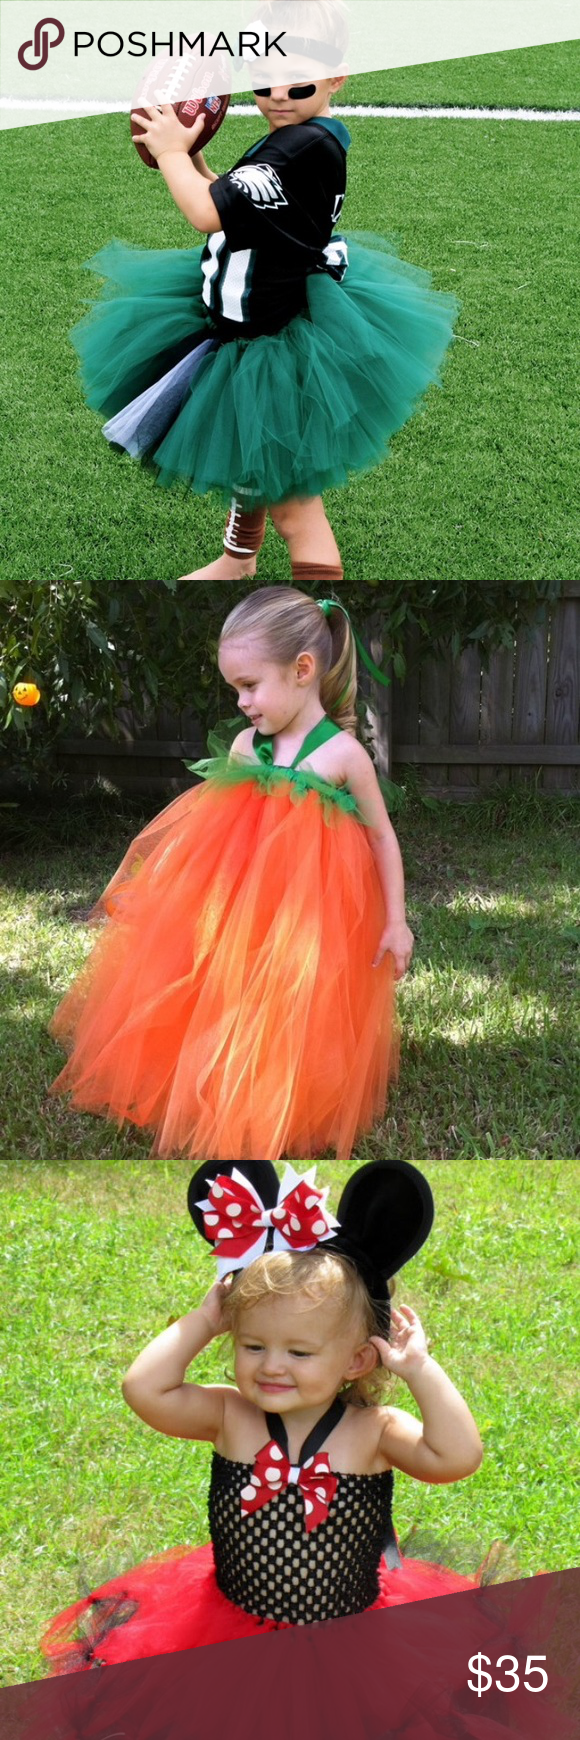 halloween costume tutus 🎀🕷🕸 the price depends on the size